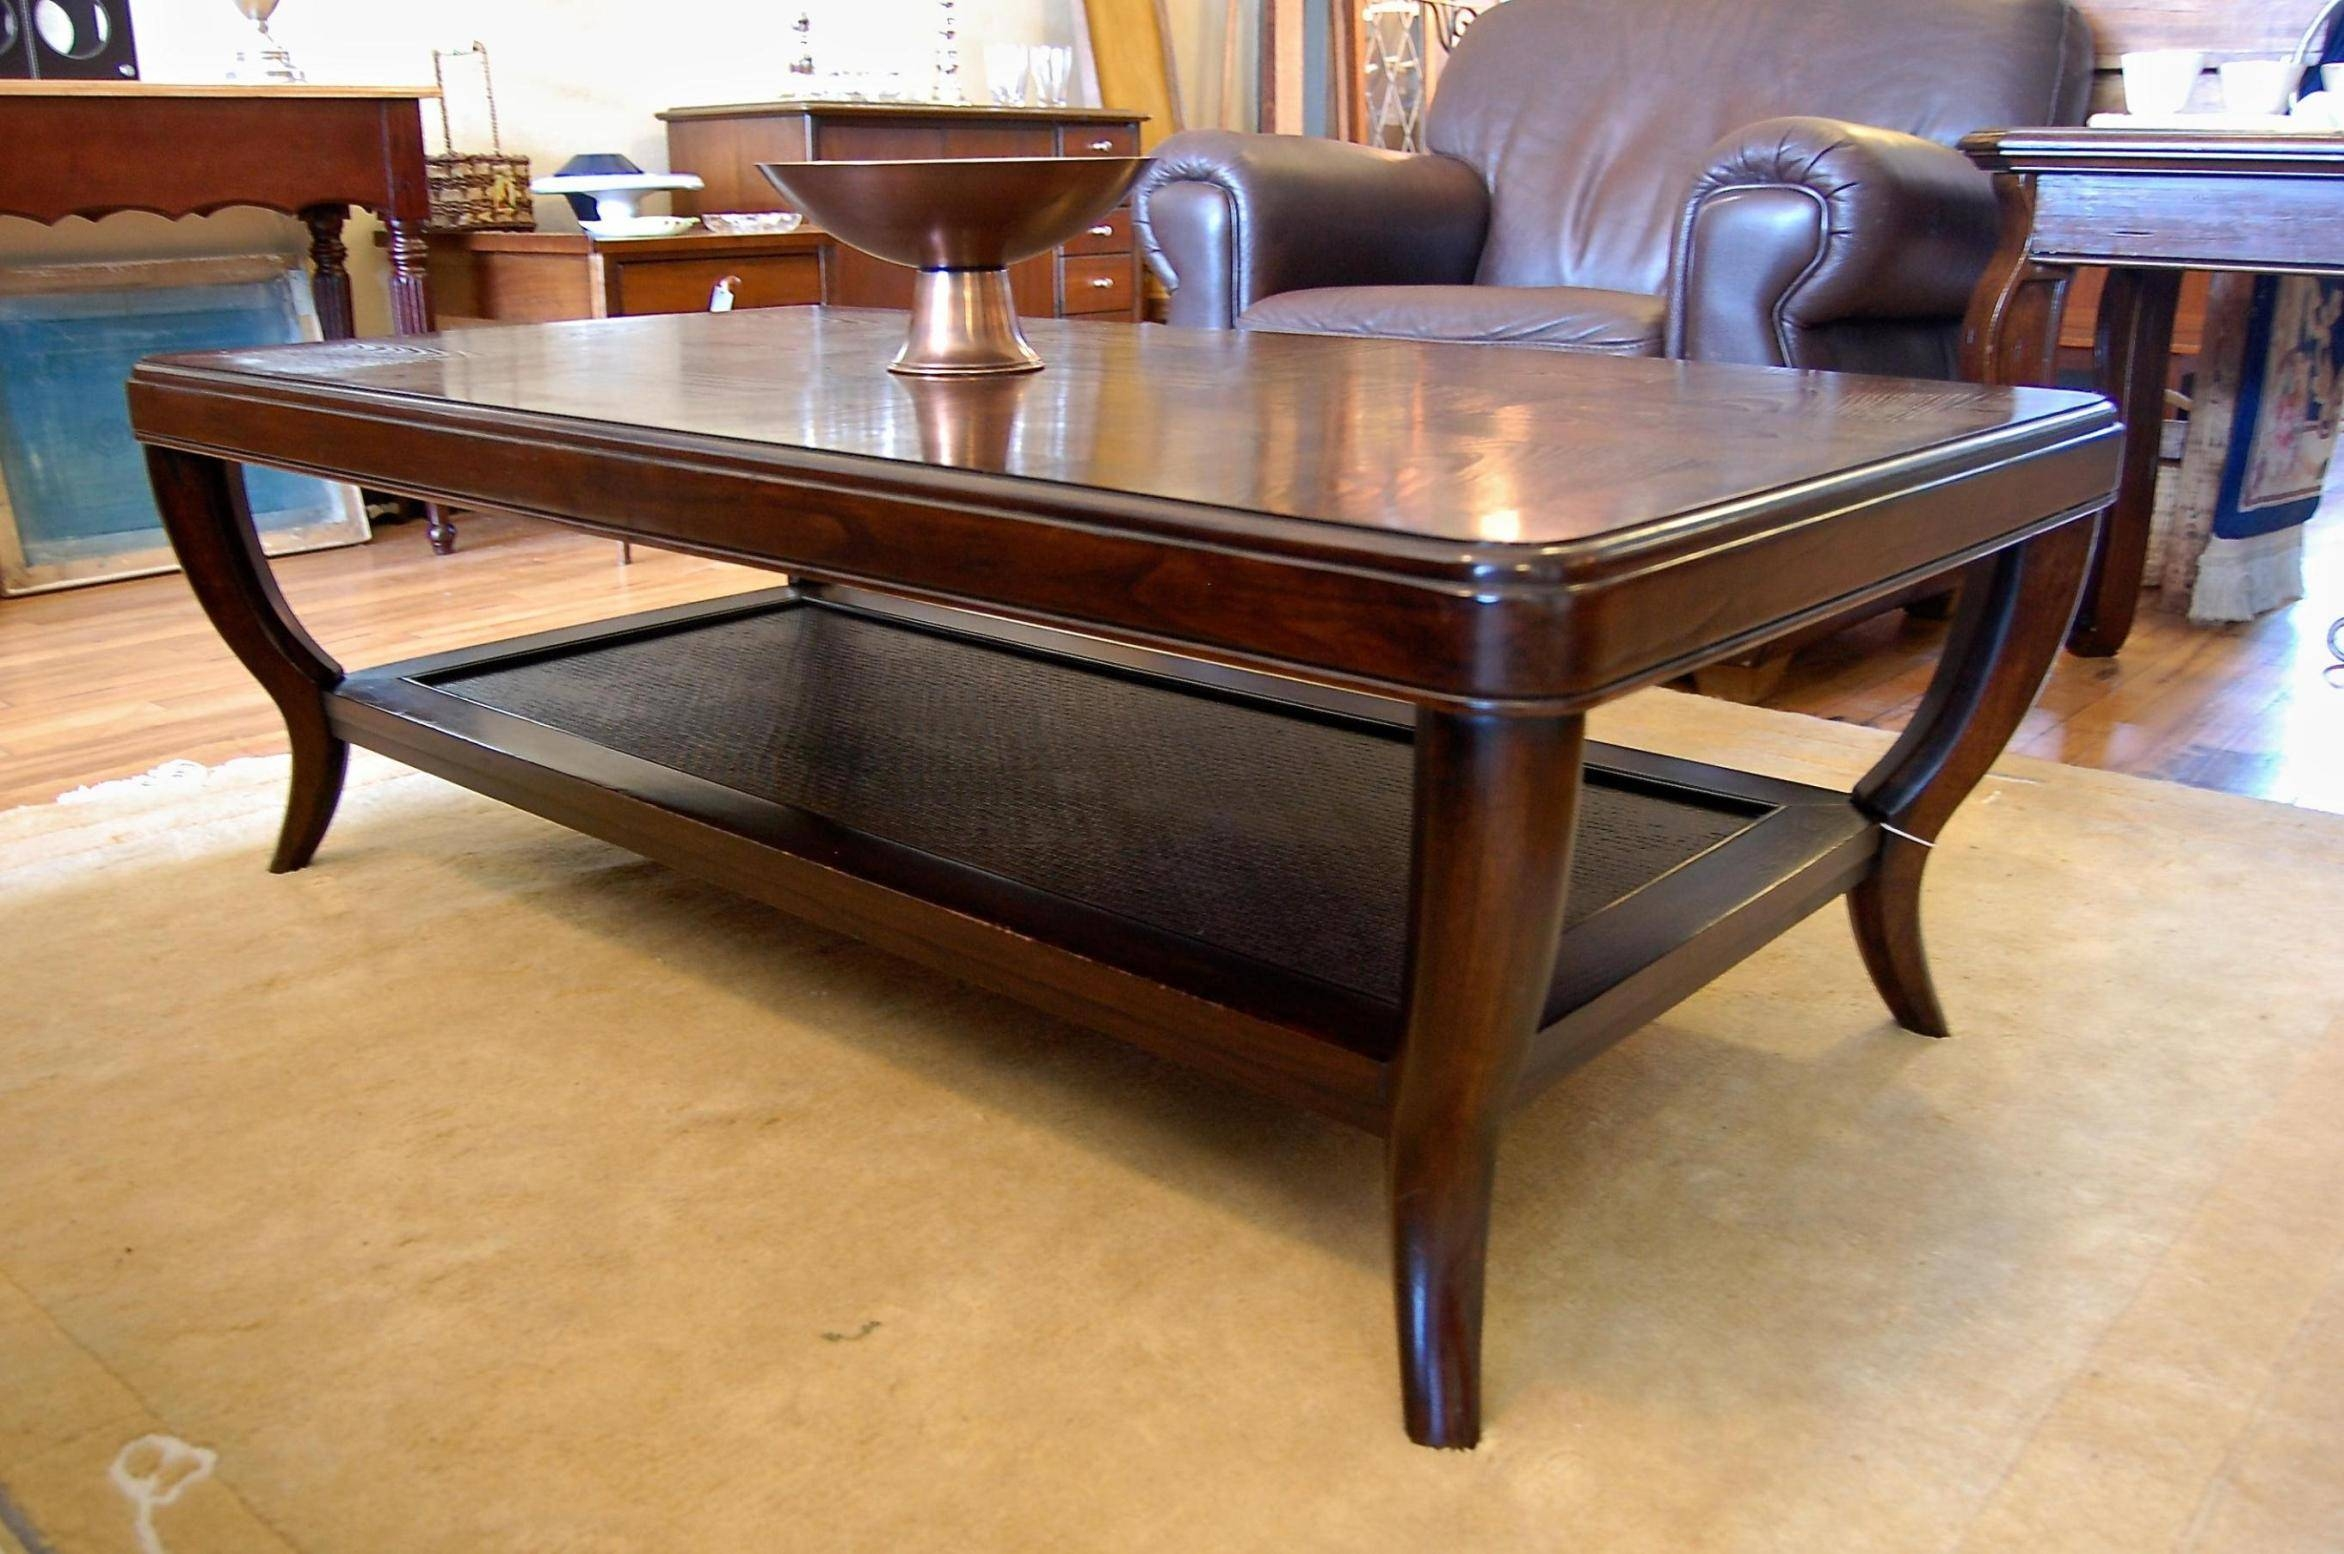 Coffee Table. Stylish Extra Large Coffee Table Designs: Elegant within Extra Large Coffee Tables (Image 3 of 15)